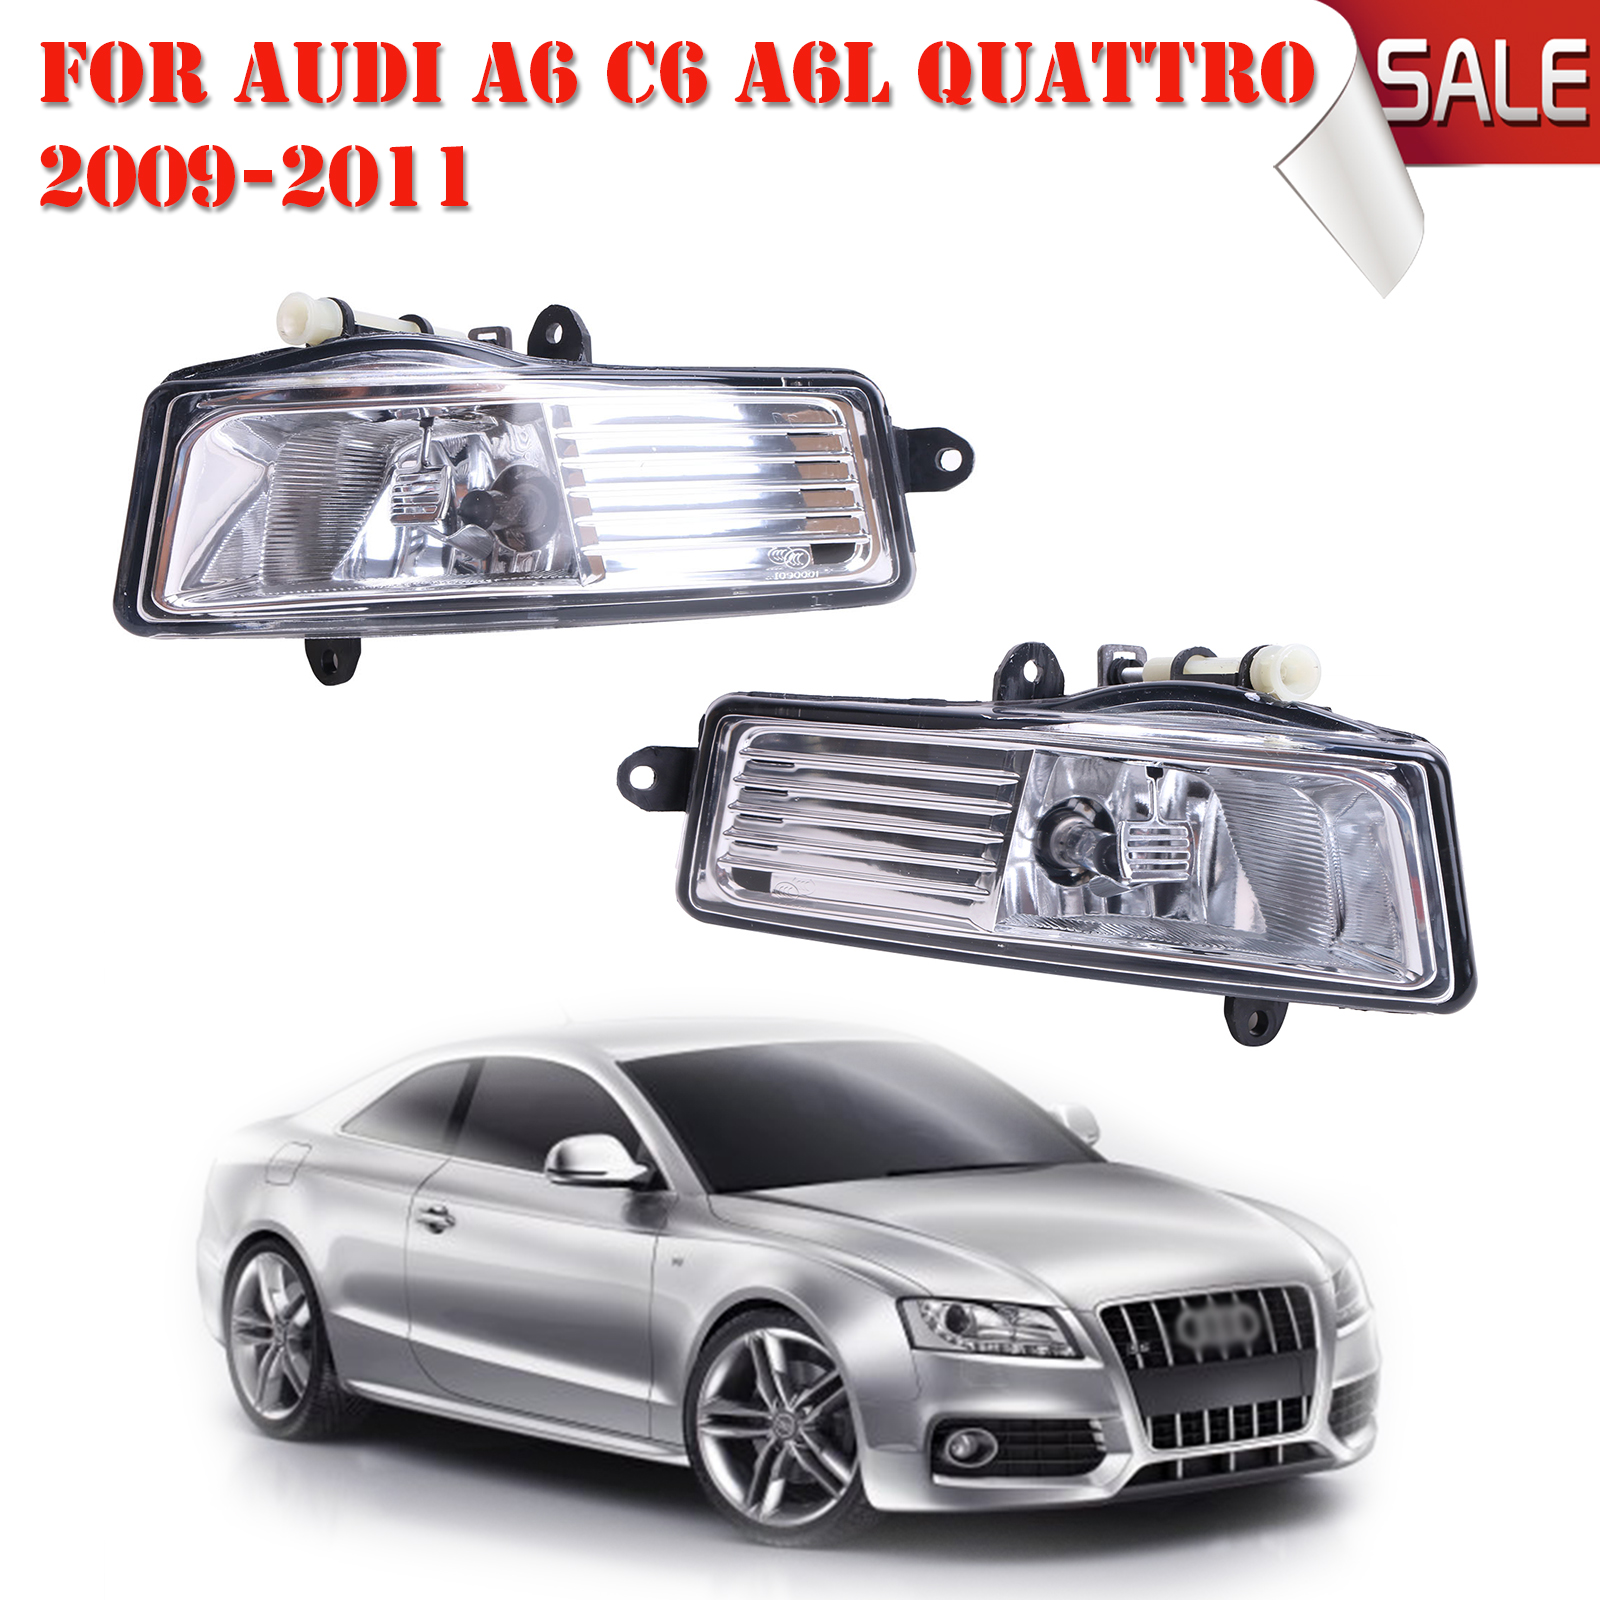 1 Pair Front Fog Lights Foglamps Set For Audi A6 C6 A6L Quattro 2009 2010 2011 4FD941699A + 4FD9416700A Car-Styling P313-F // audi coupe quattro купить витебск